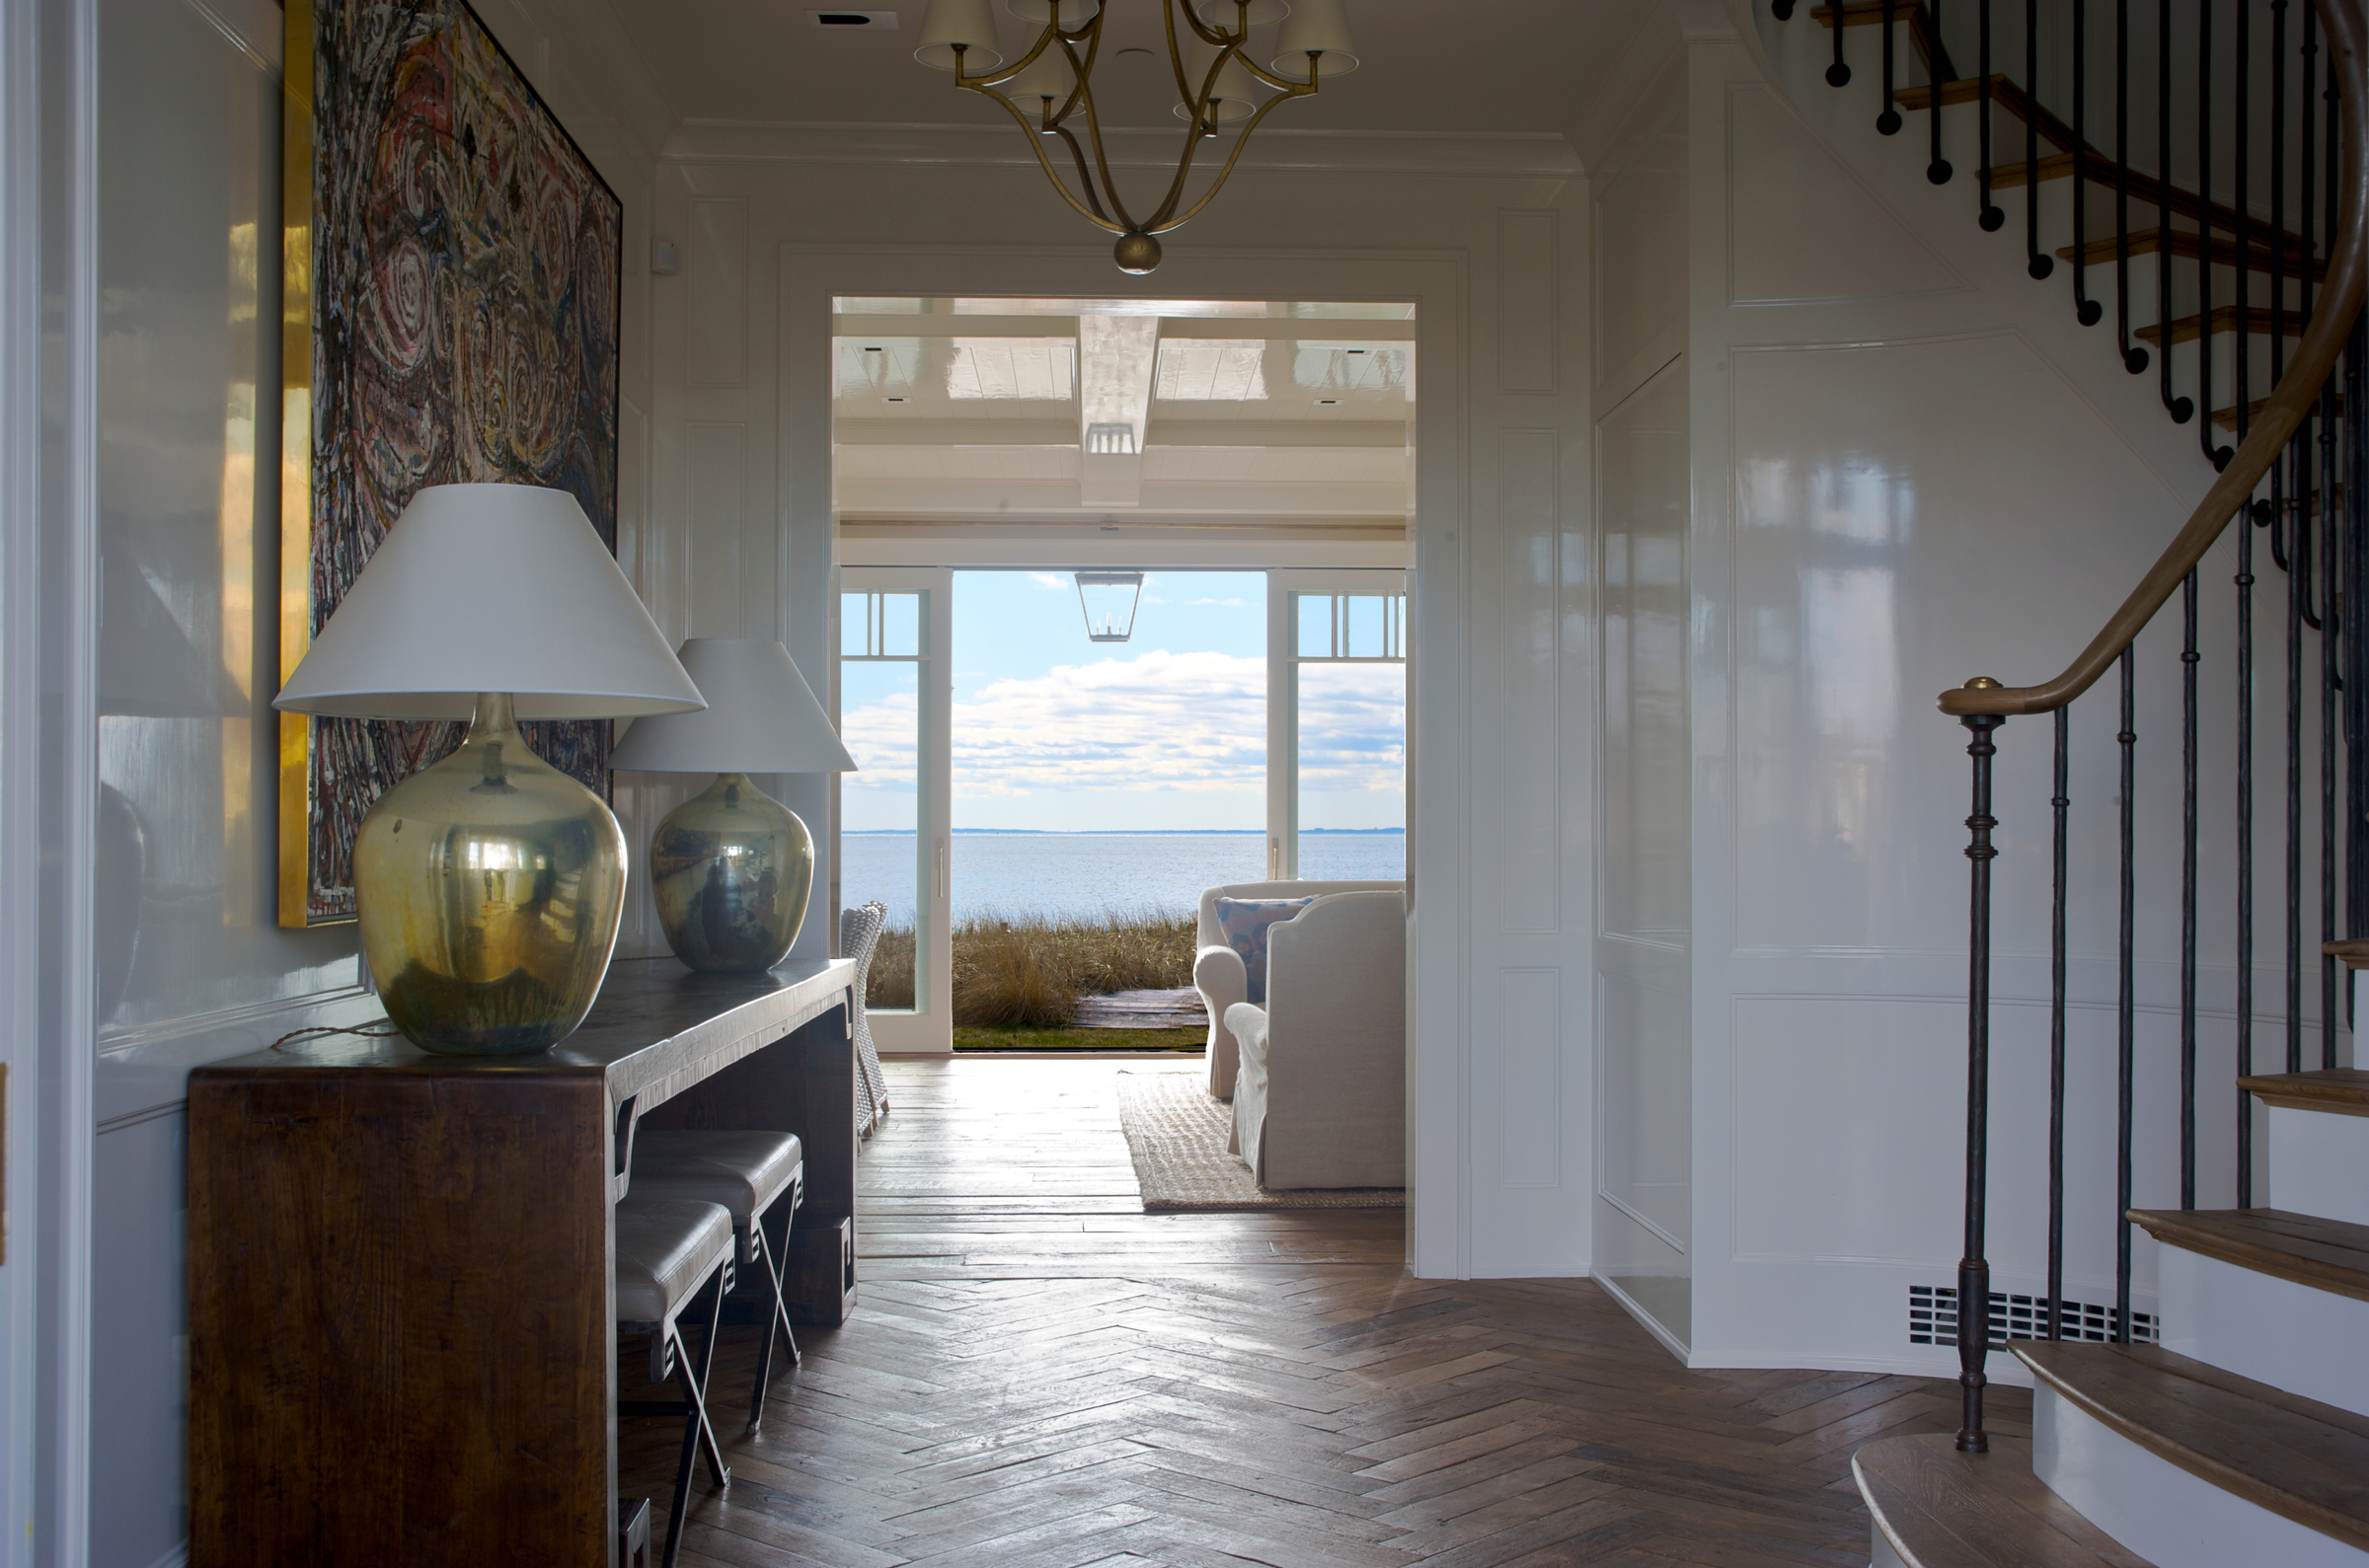 foyer into main room with window view.jpg